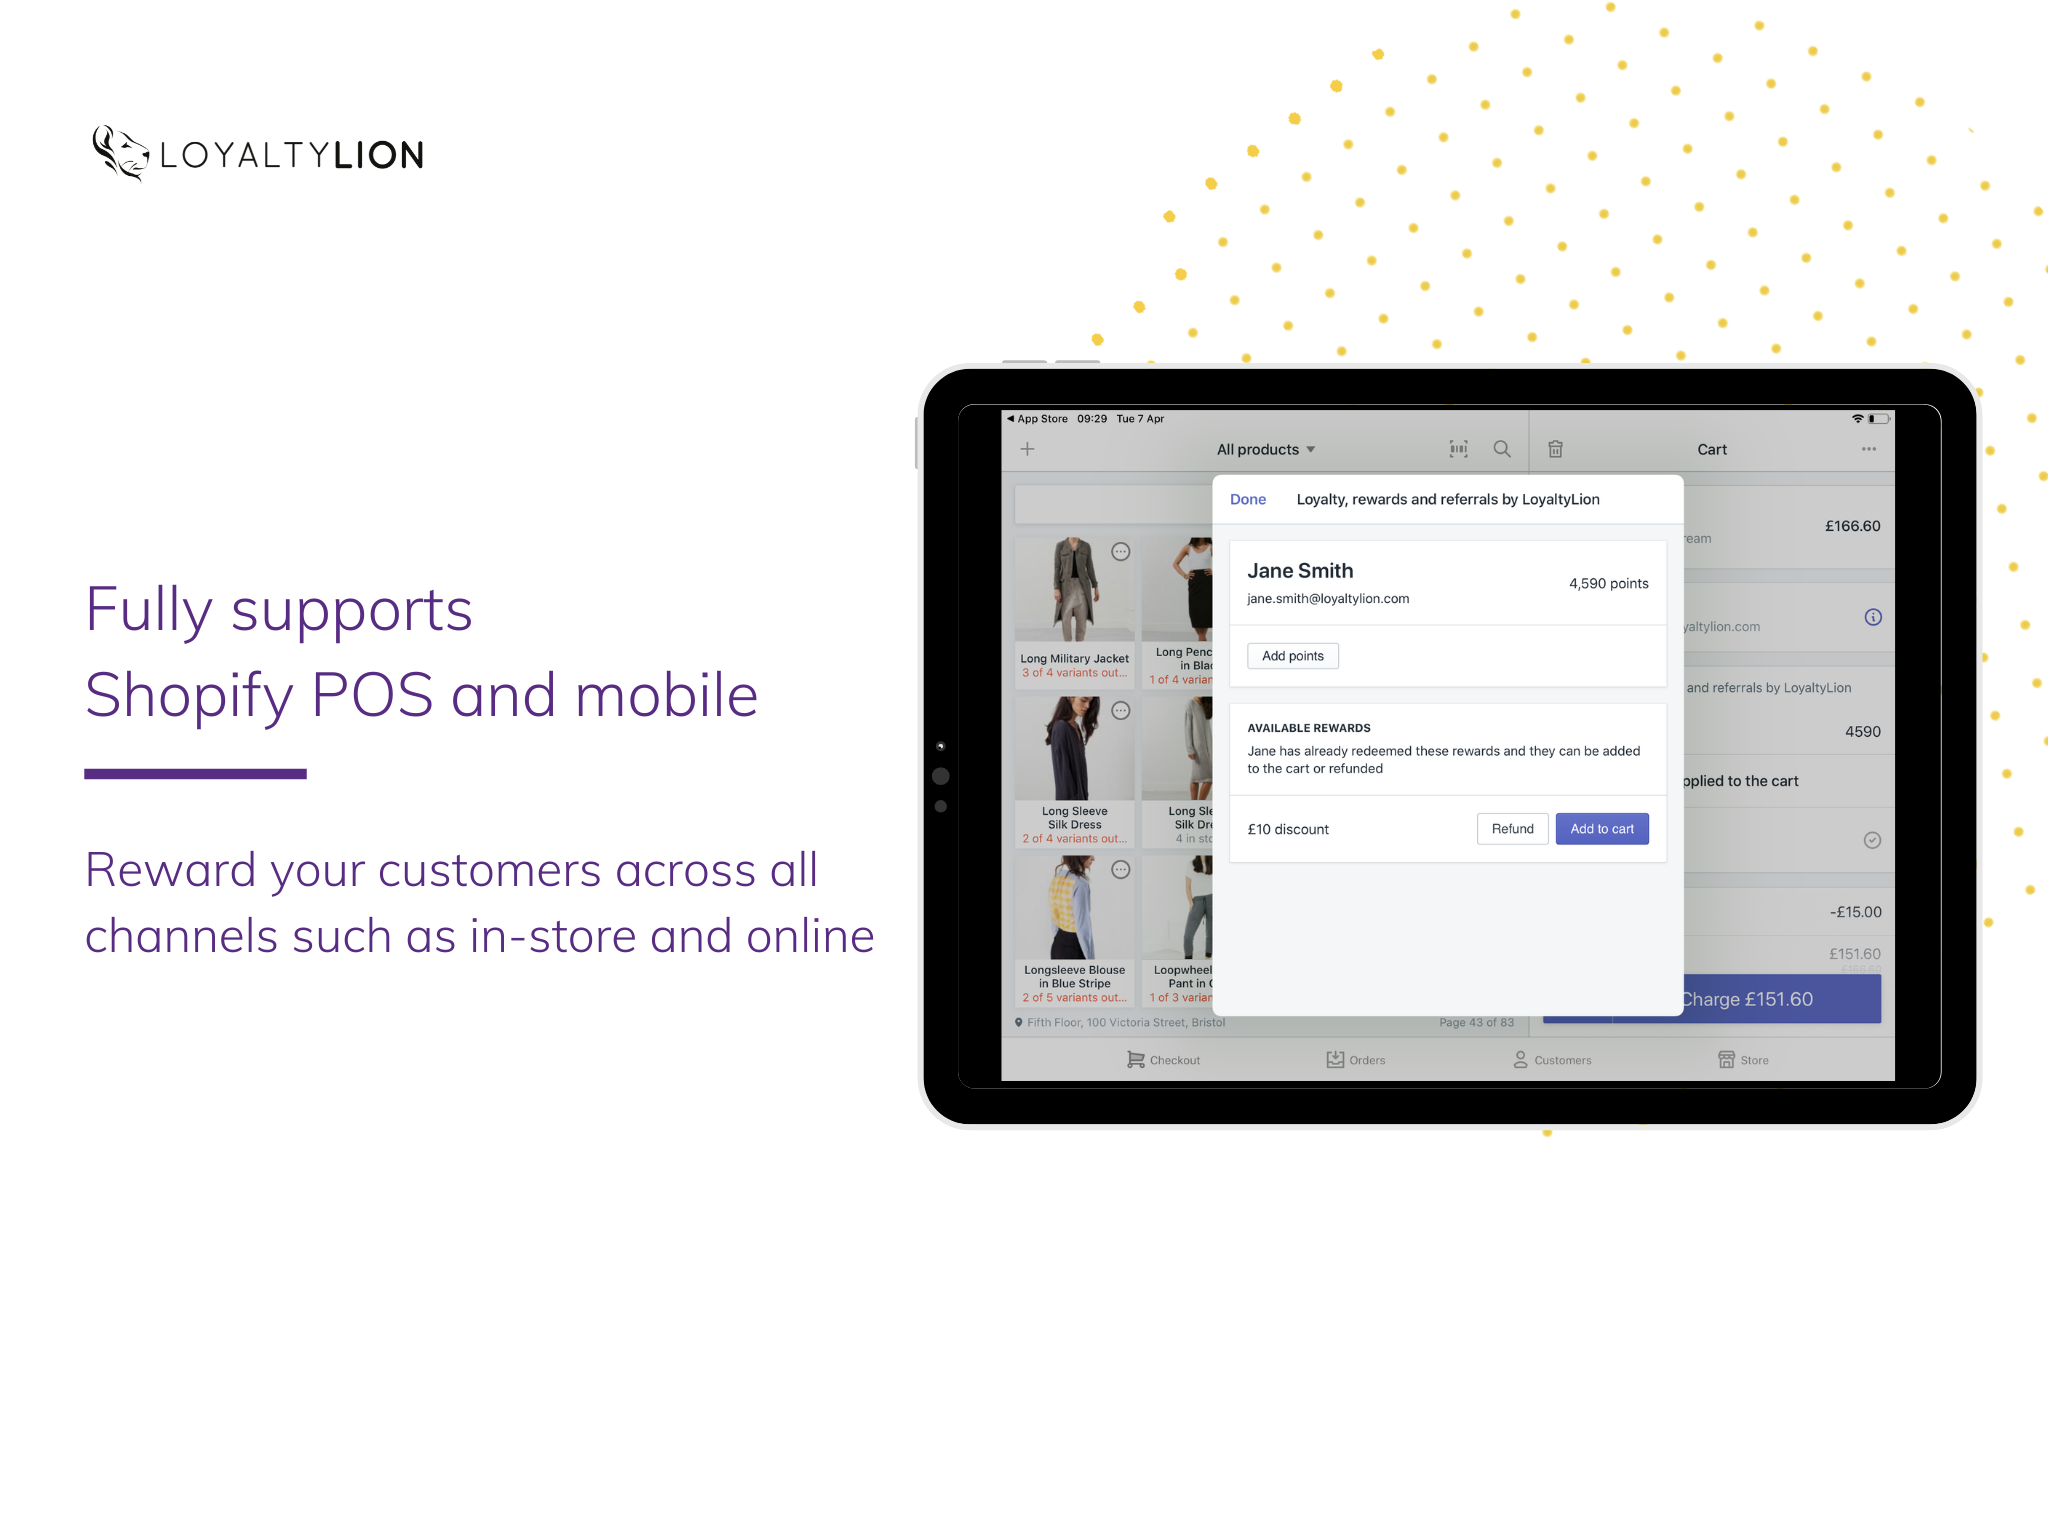 Fully supports Shopify POS and mobile